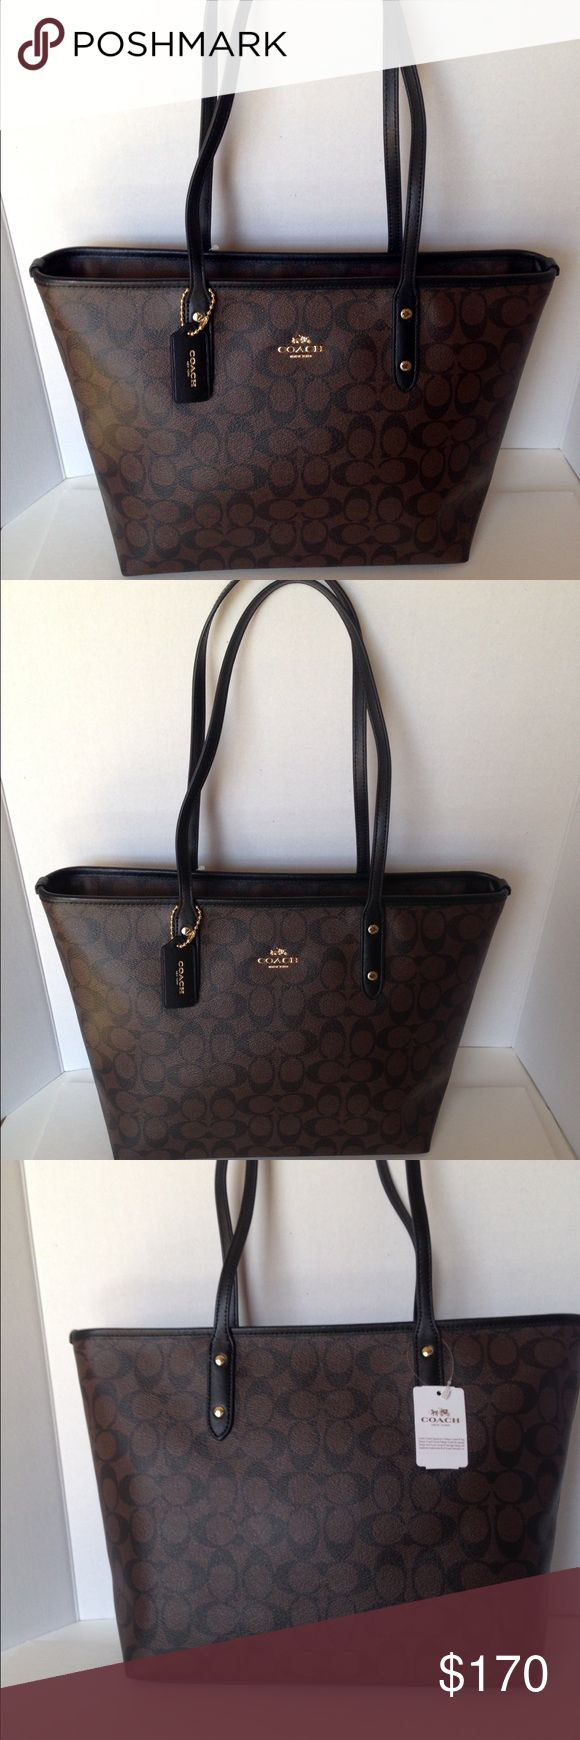 """NWT Coach Sig City Zip Tote/Brn/Blk New with tags signature PVC city zip tote in brown/black; trimmed with black leather. Handles with 9 1/2"""" drop. Gold hardware. Chocolate twill lining with zippered pocket and two slip pockets. F5892. No Trades Coach Bags Shoulder Bags"""